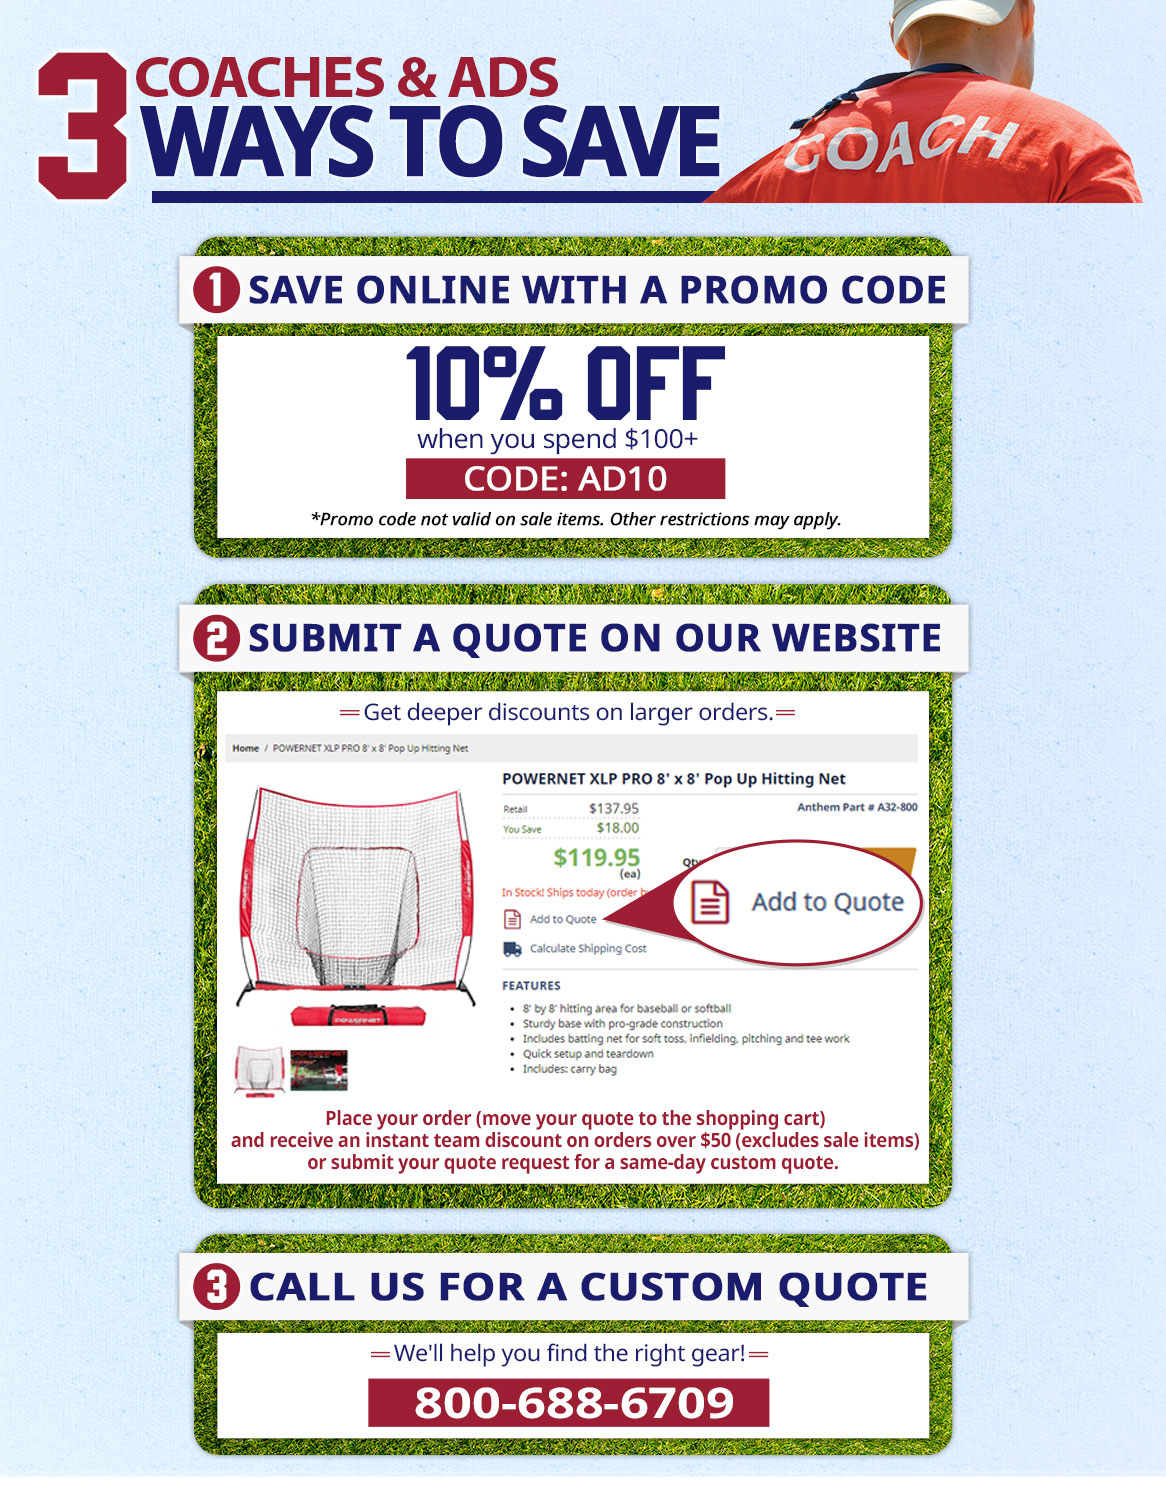 Coaches & ADs, save 10% on orders of $100 with promo code: AD10